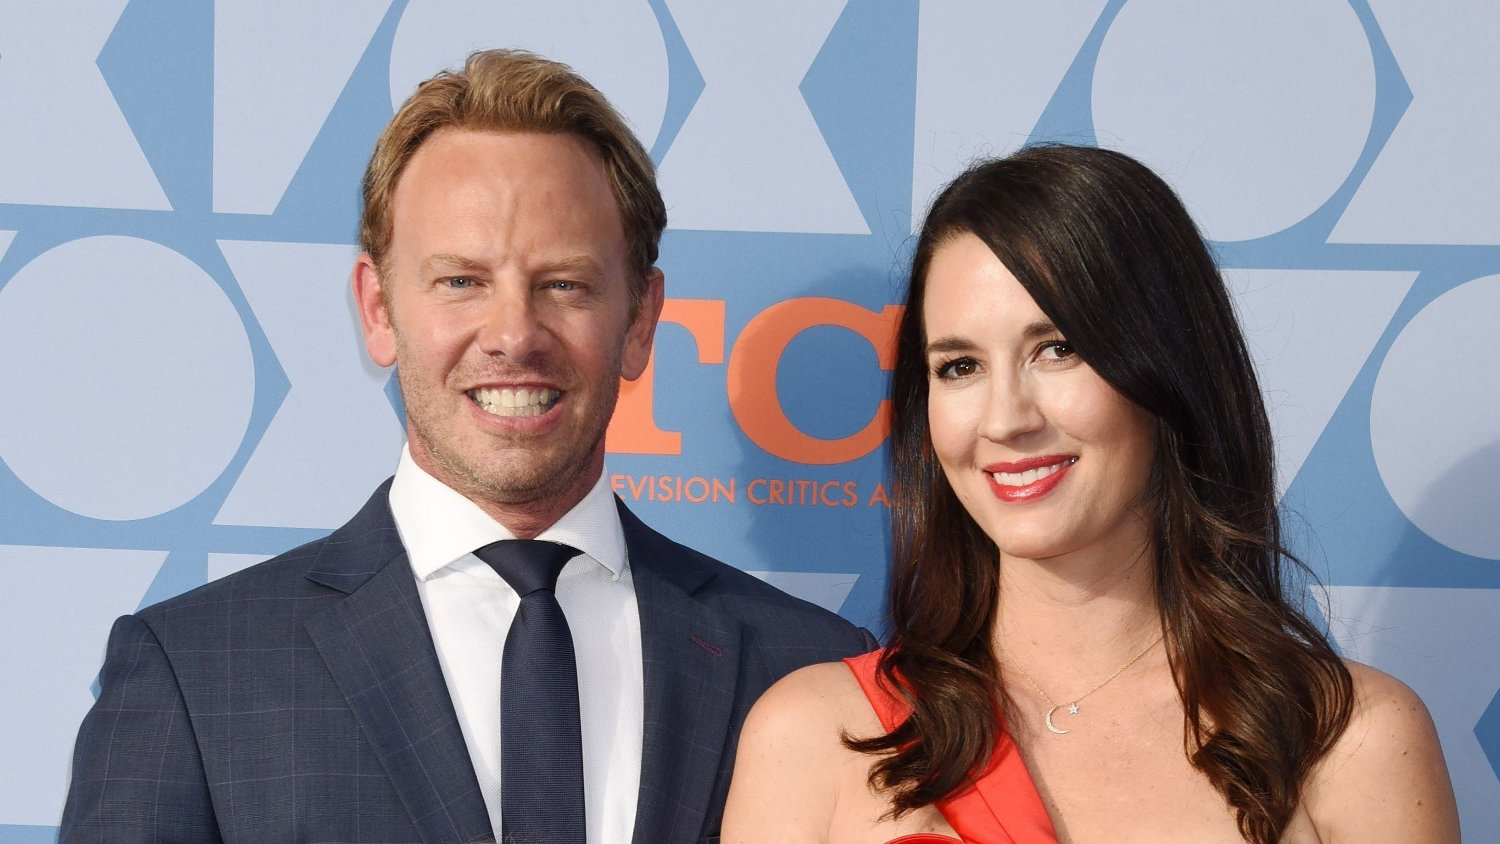 FOX Summer TCA 2019 All-Star Party FOX Summer TCA 2019 All-Star Party. Ian Ziering, Erin Ziering, Mia Ziering and Penna Ziering at the FOX Summer TCA 2019 All-Star Party held at FOX Studios on August 7, 2019 in Los Angeles, CA. © Janet Gough / AFF-USA.com URN:44556376